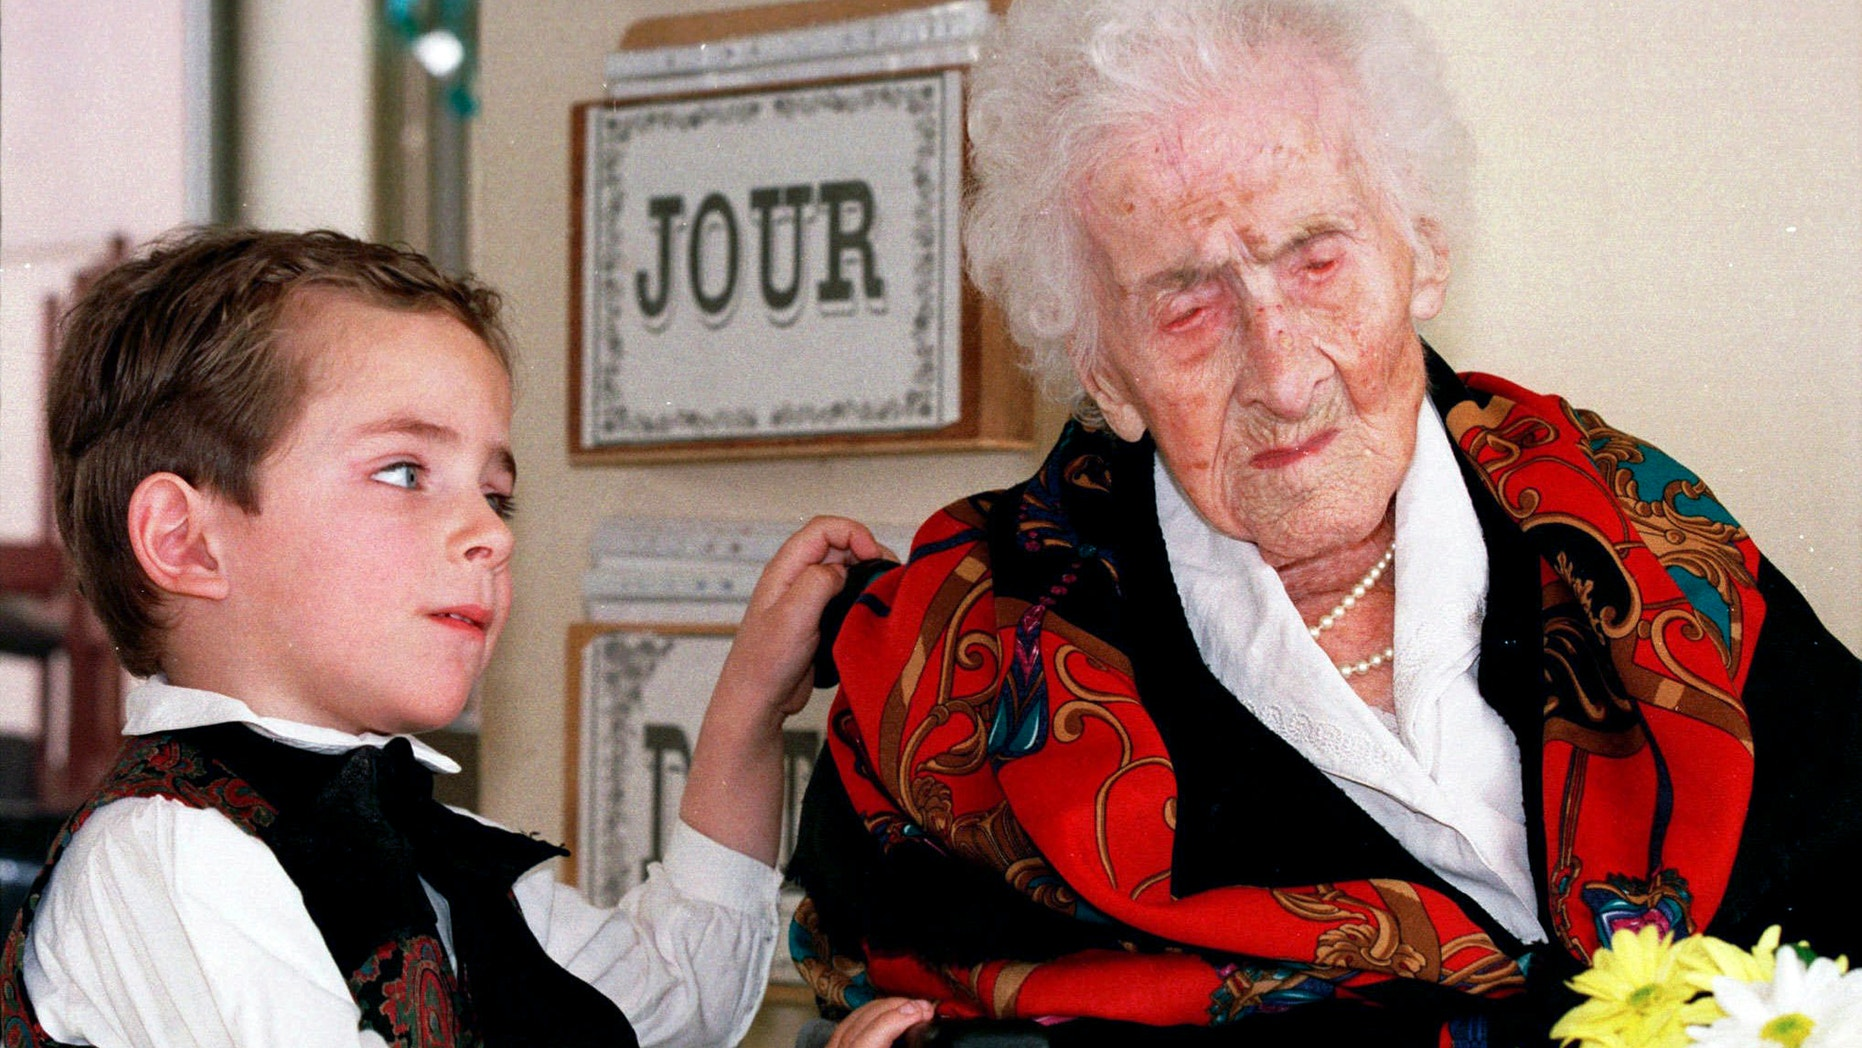 In this Feb. 12, 1997 file photo shows Thomas, 5, looks at Jeanne Calment after he brought her flowers at her retirement home in Arles, southern France. Calment, believed to be the world's oldest person, died at the age of 122 in 1997. New research published in the journal Nature on Wednesday, Oct. 5, 2016 suggests there's a limit to our life span and that the odds of breaking Calment's record are small.